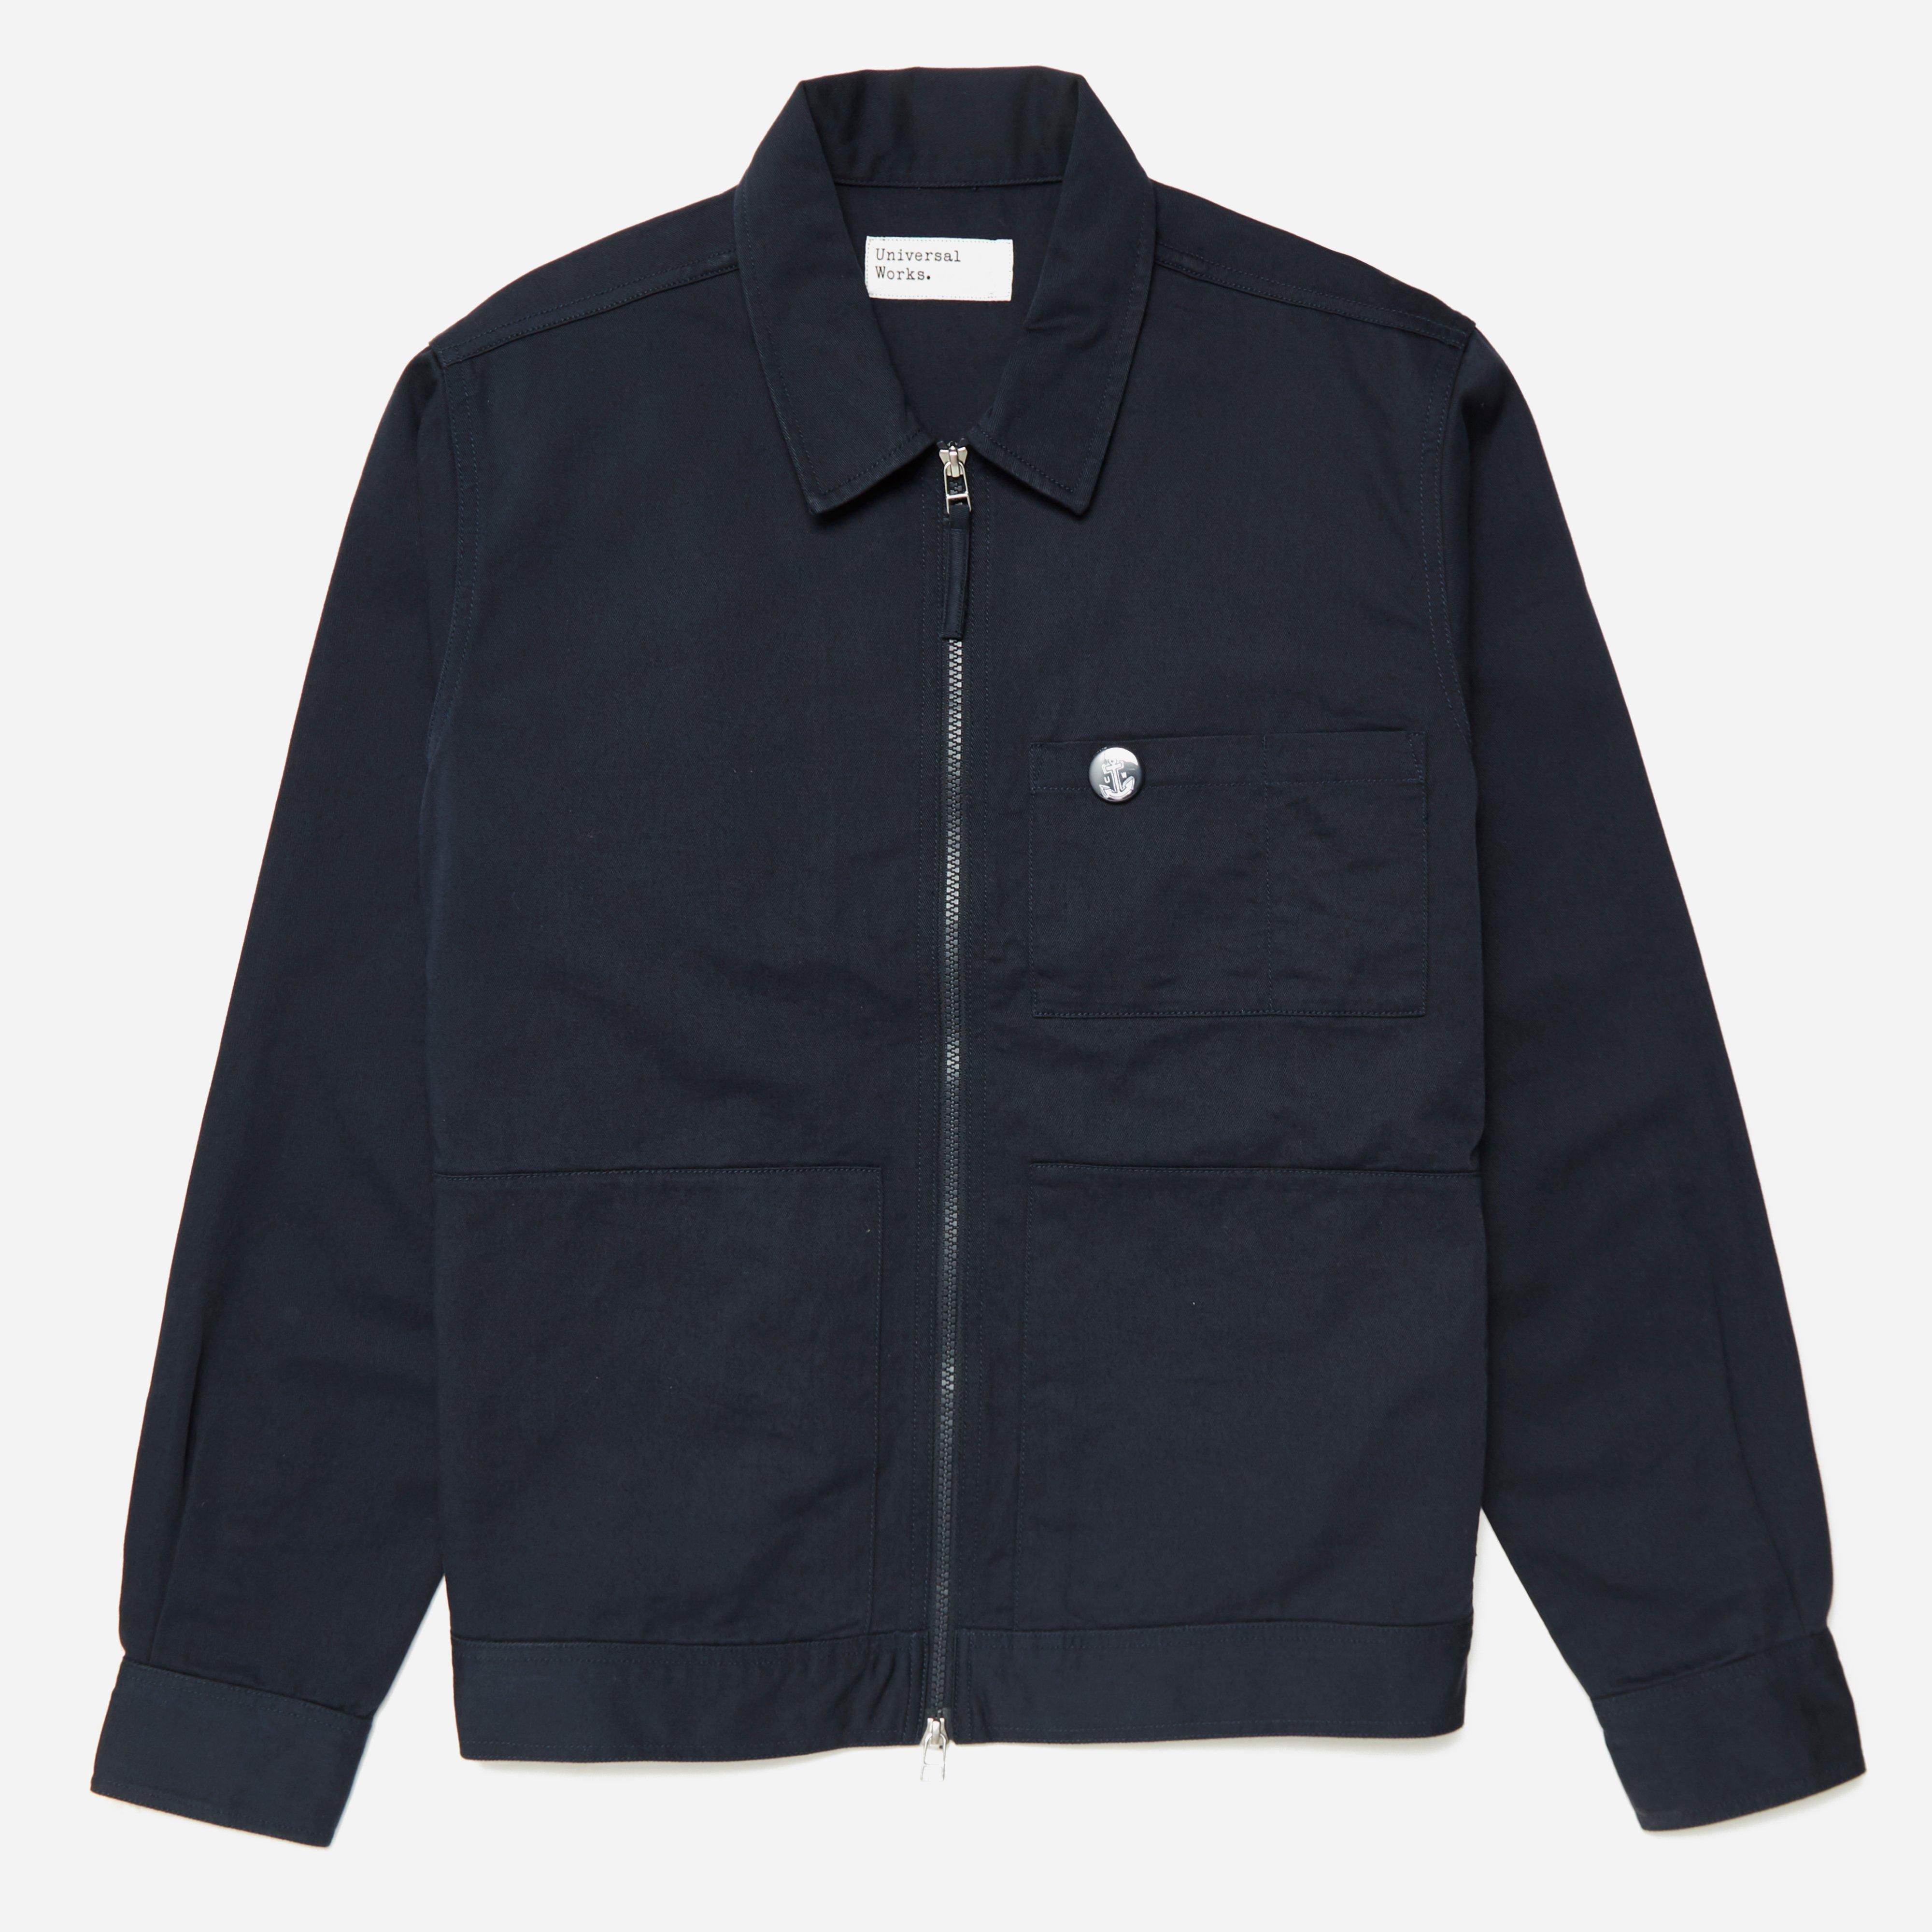 Universal Works Twill Zip Unifrom Shirt